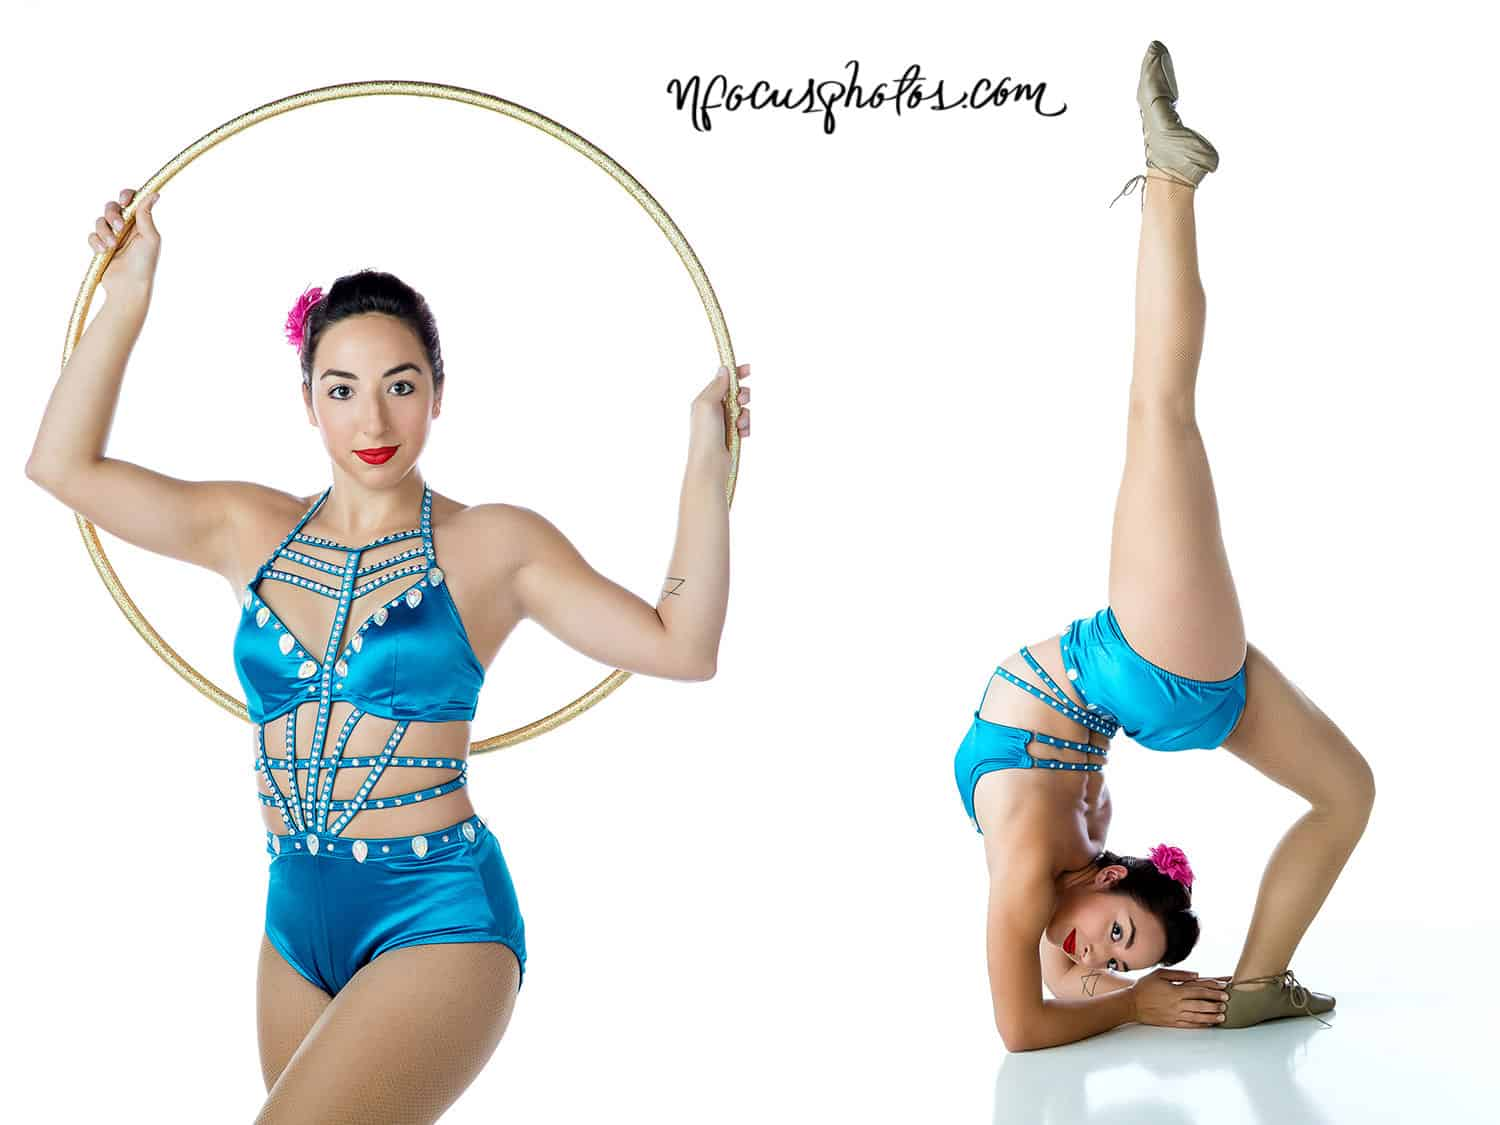 nFocus Photos Crystal Lake Photographer Circus Performer Acting Headshot Portfolio